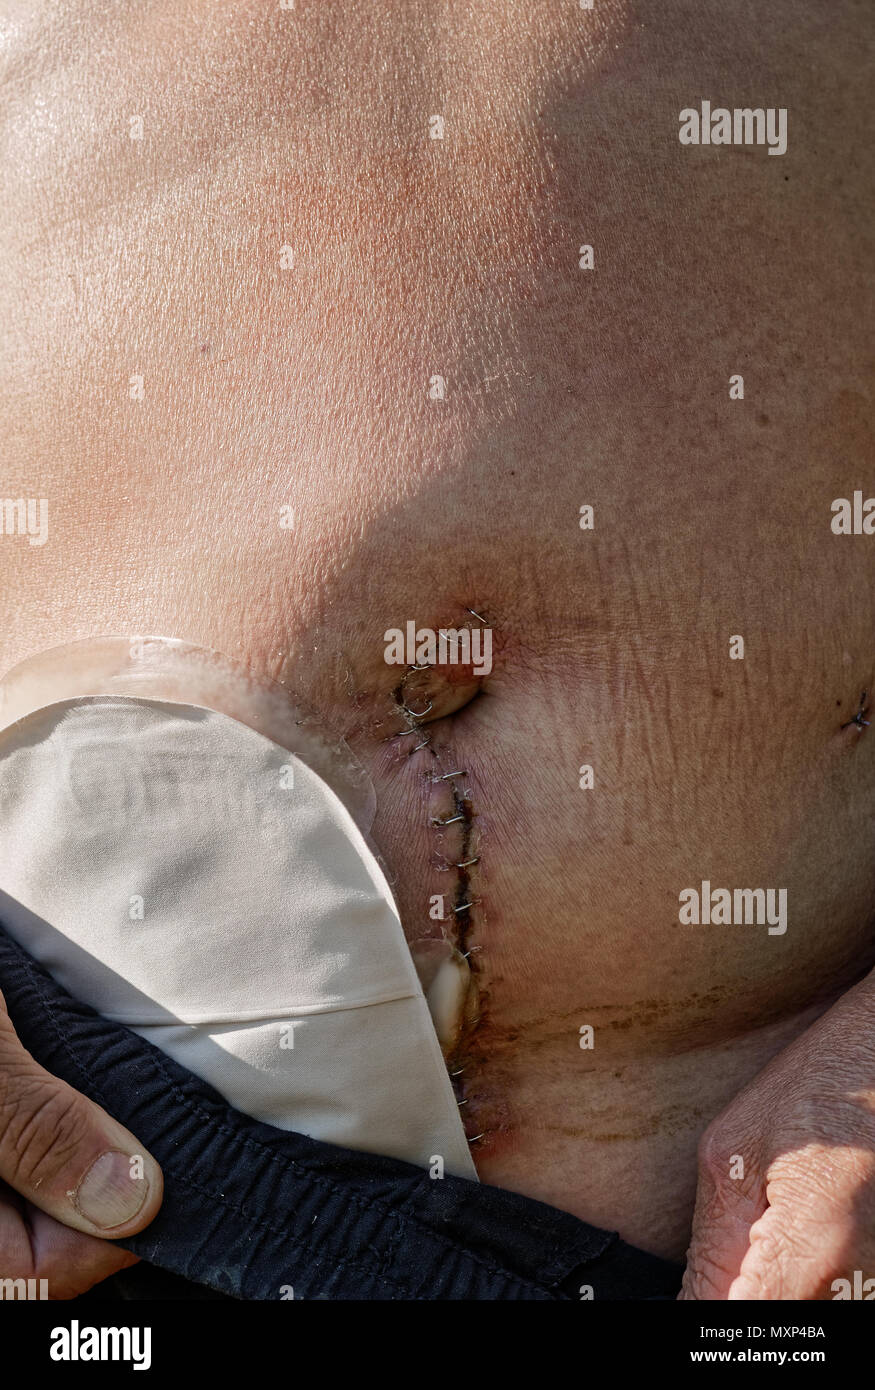 Adult caucasian man with temporary stoma after bowel surgery - Stock Image